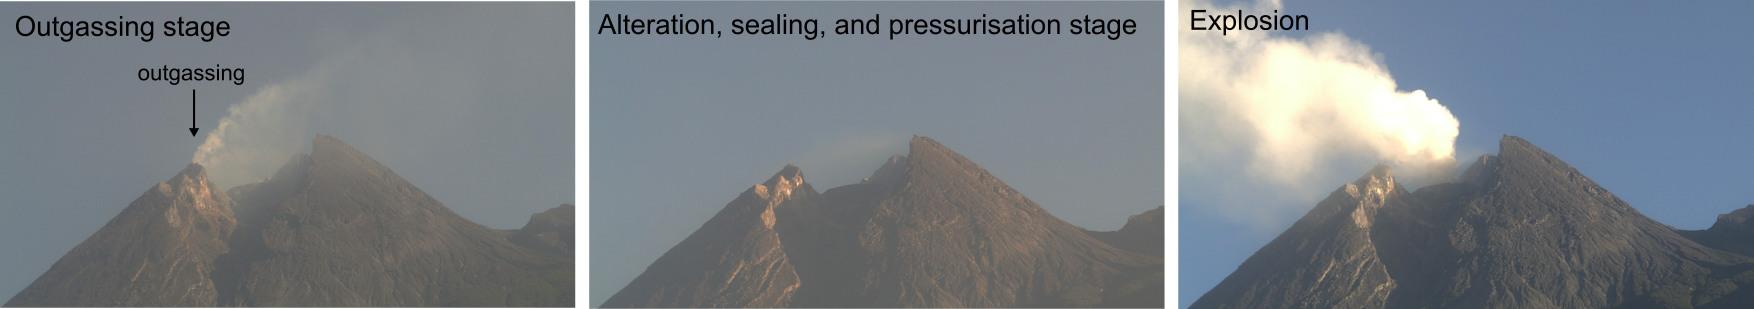 Photographs from Merapi volcano (Indonesia) outlining the process described in the study. Left: Volcanic gases can escape (outgas) and the pressure within and beneath the dome does not increase. Middle: Hydrothermal alteration reduces the permeability of the dome and effectively shuts off outgassing, resulting pressure buildup beneath the dome. Right: This gas overpressure drives fragmentation and explosive behaviour. The explosion provides new outgassing pathways and the clock is reset.